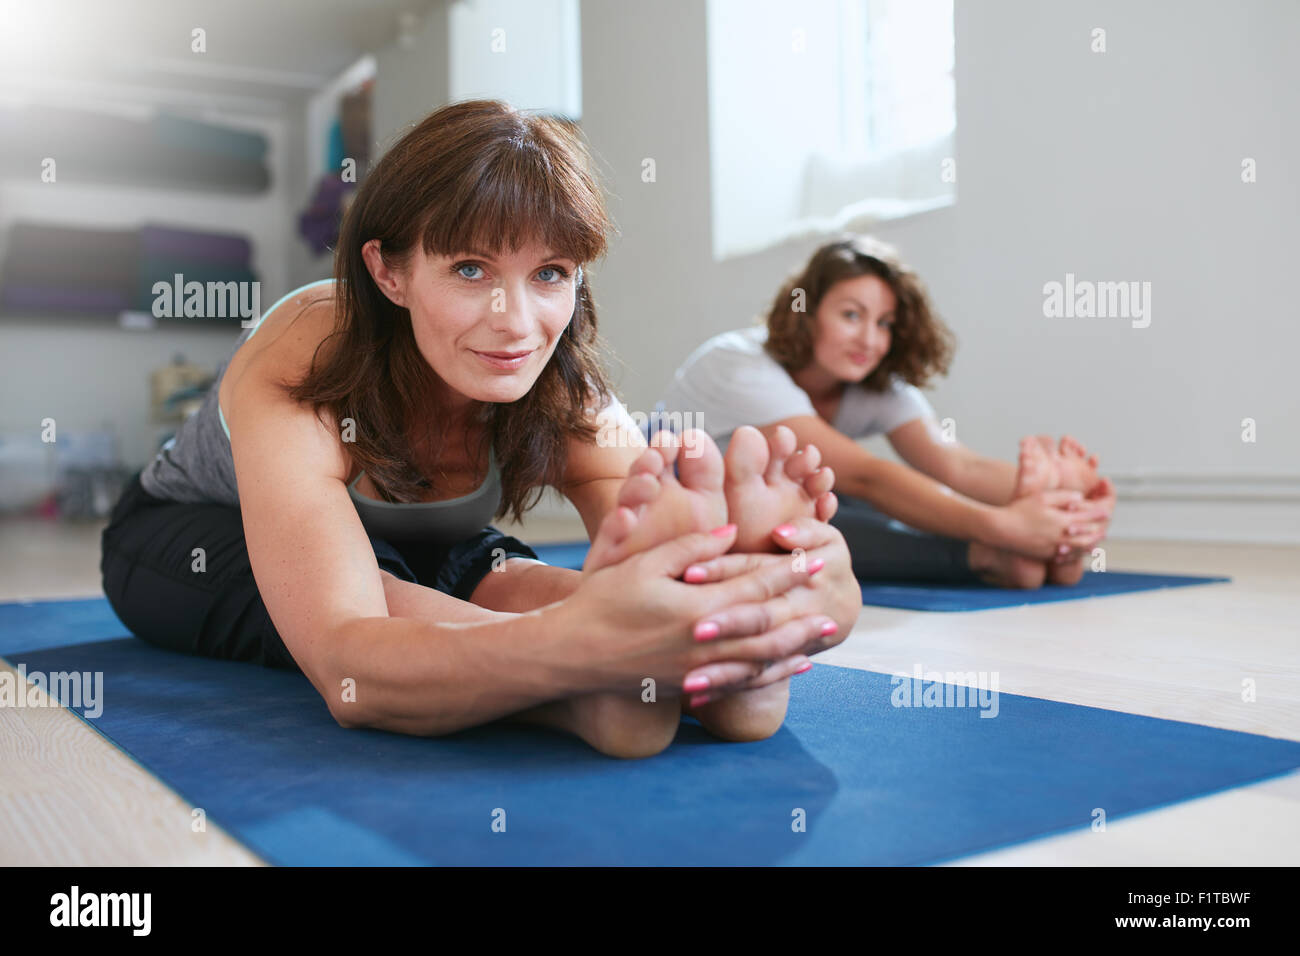 Women doing yoga together at gym, practicing paschimottanasana pose. Fitness female seated forward bend pose during - Stock Image